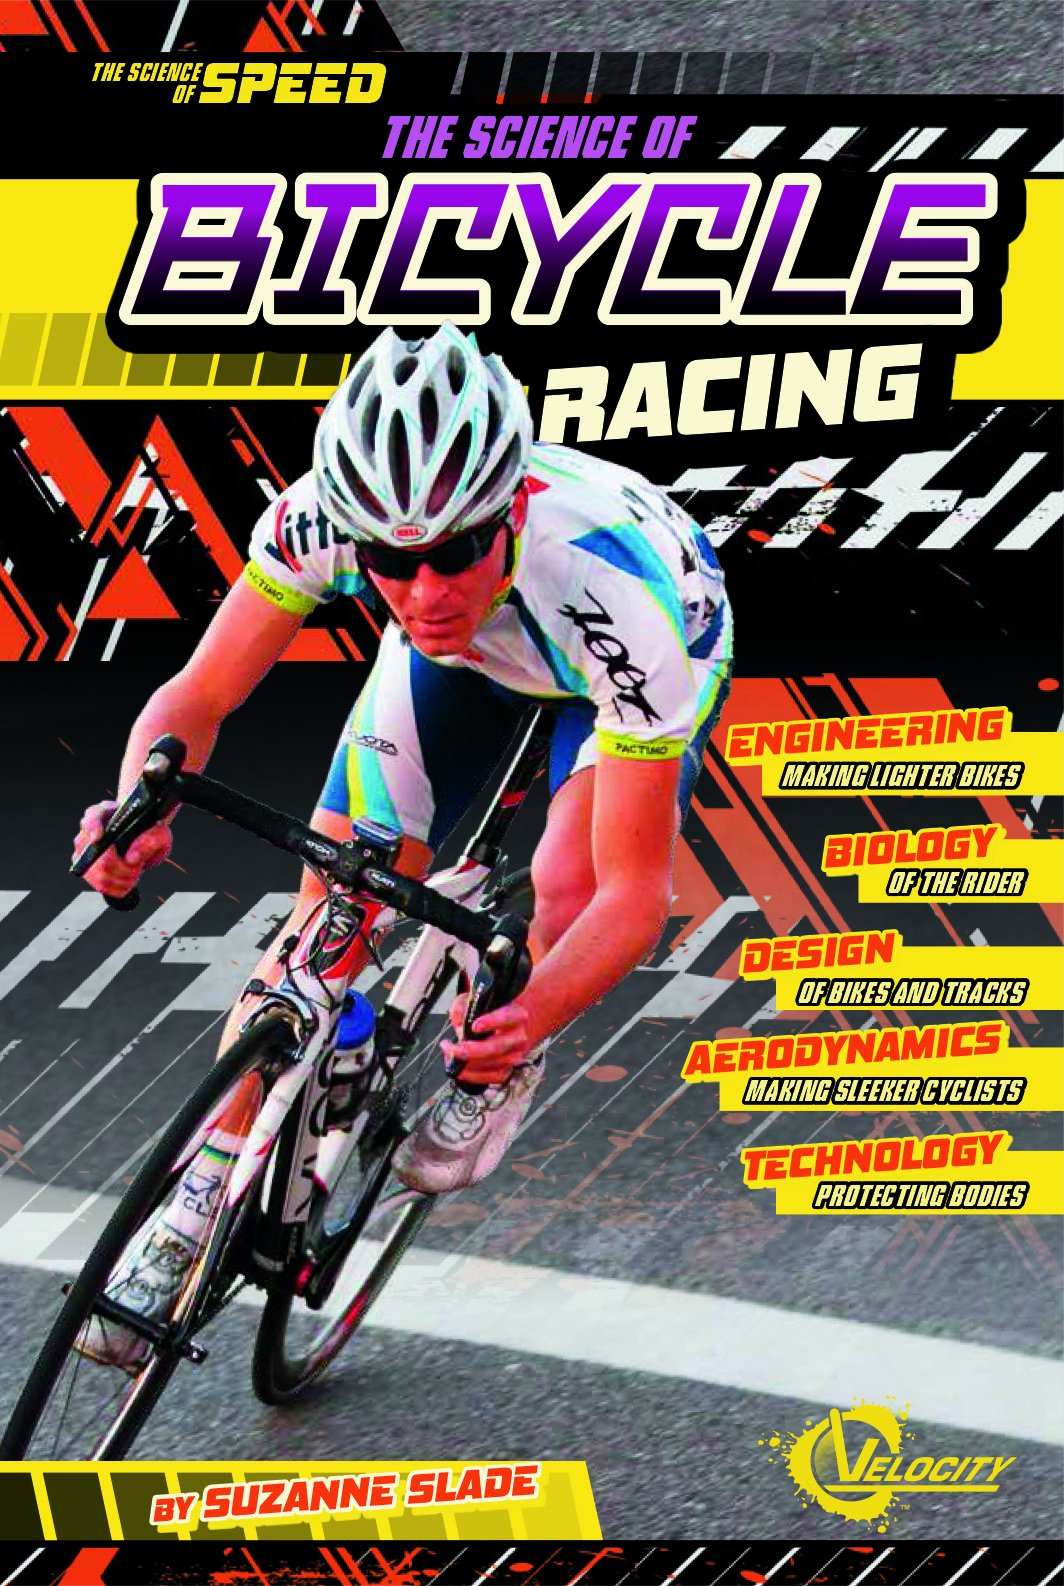 The Science of Bicycle Racing (The Science of Speed) pdf epub